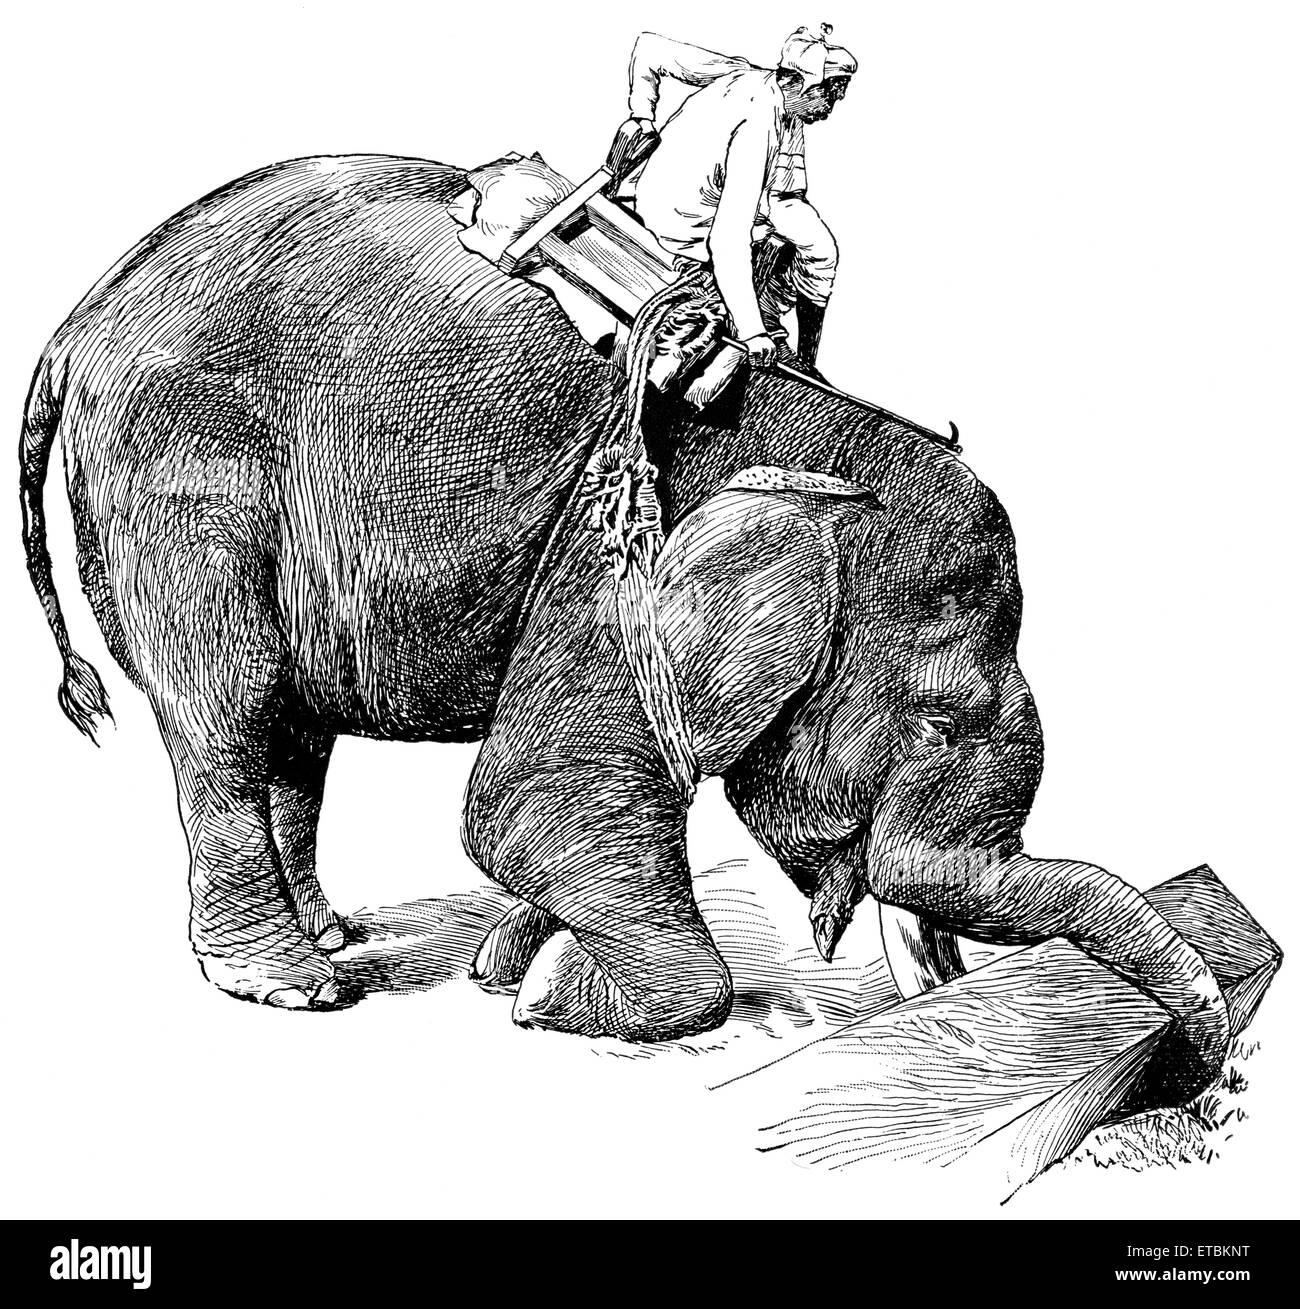 Elephant Picking Up Timber, Rangoon, Burma, 'Classical Portfolio of Primitive Carriers', by Marshall M. - Stock Image